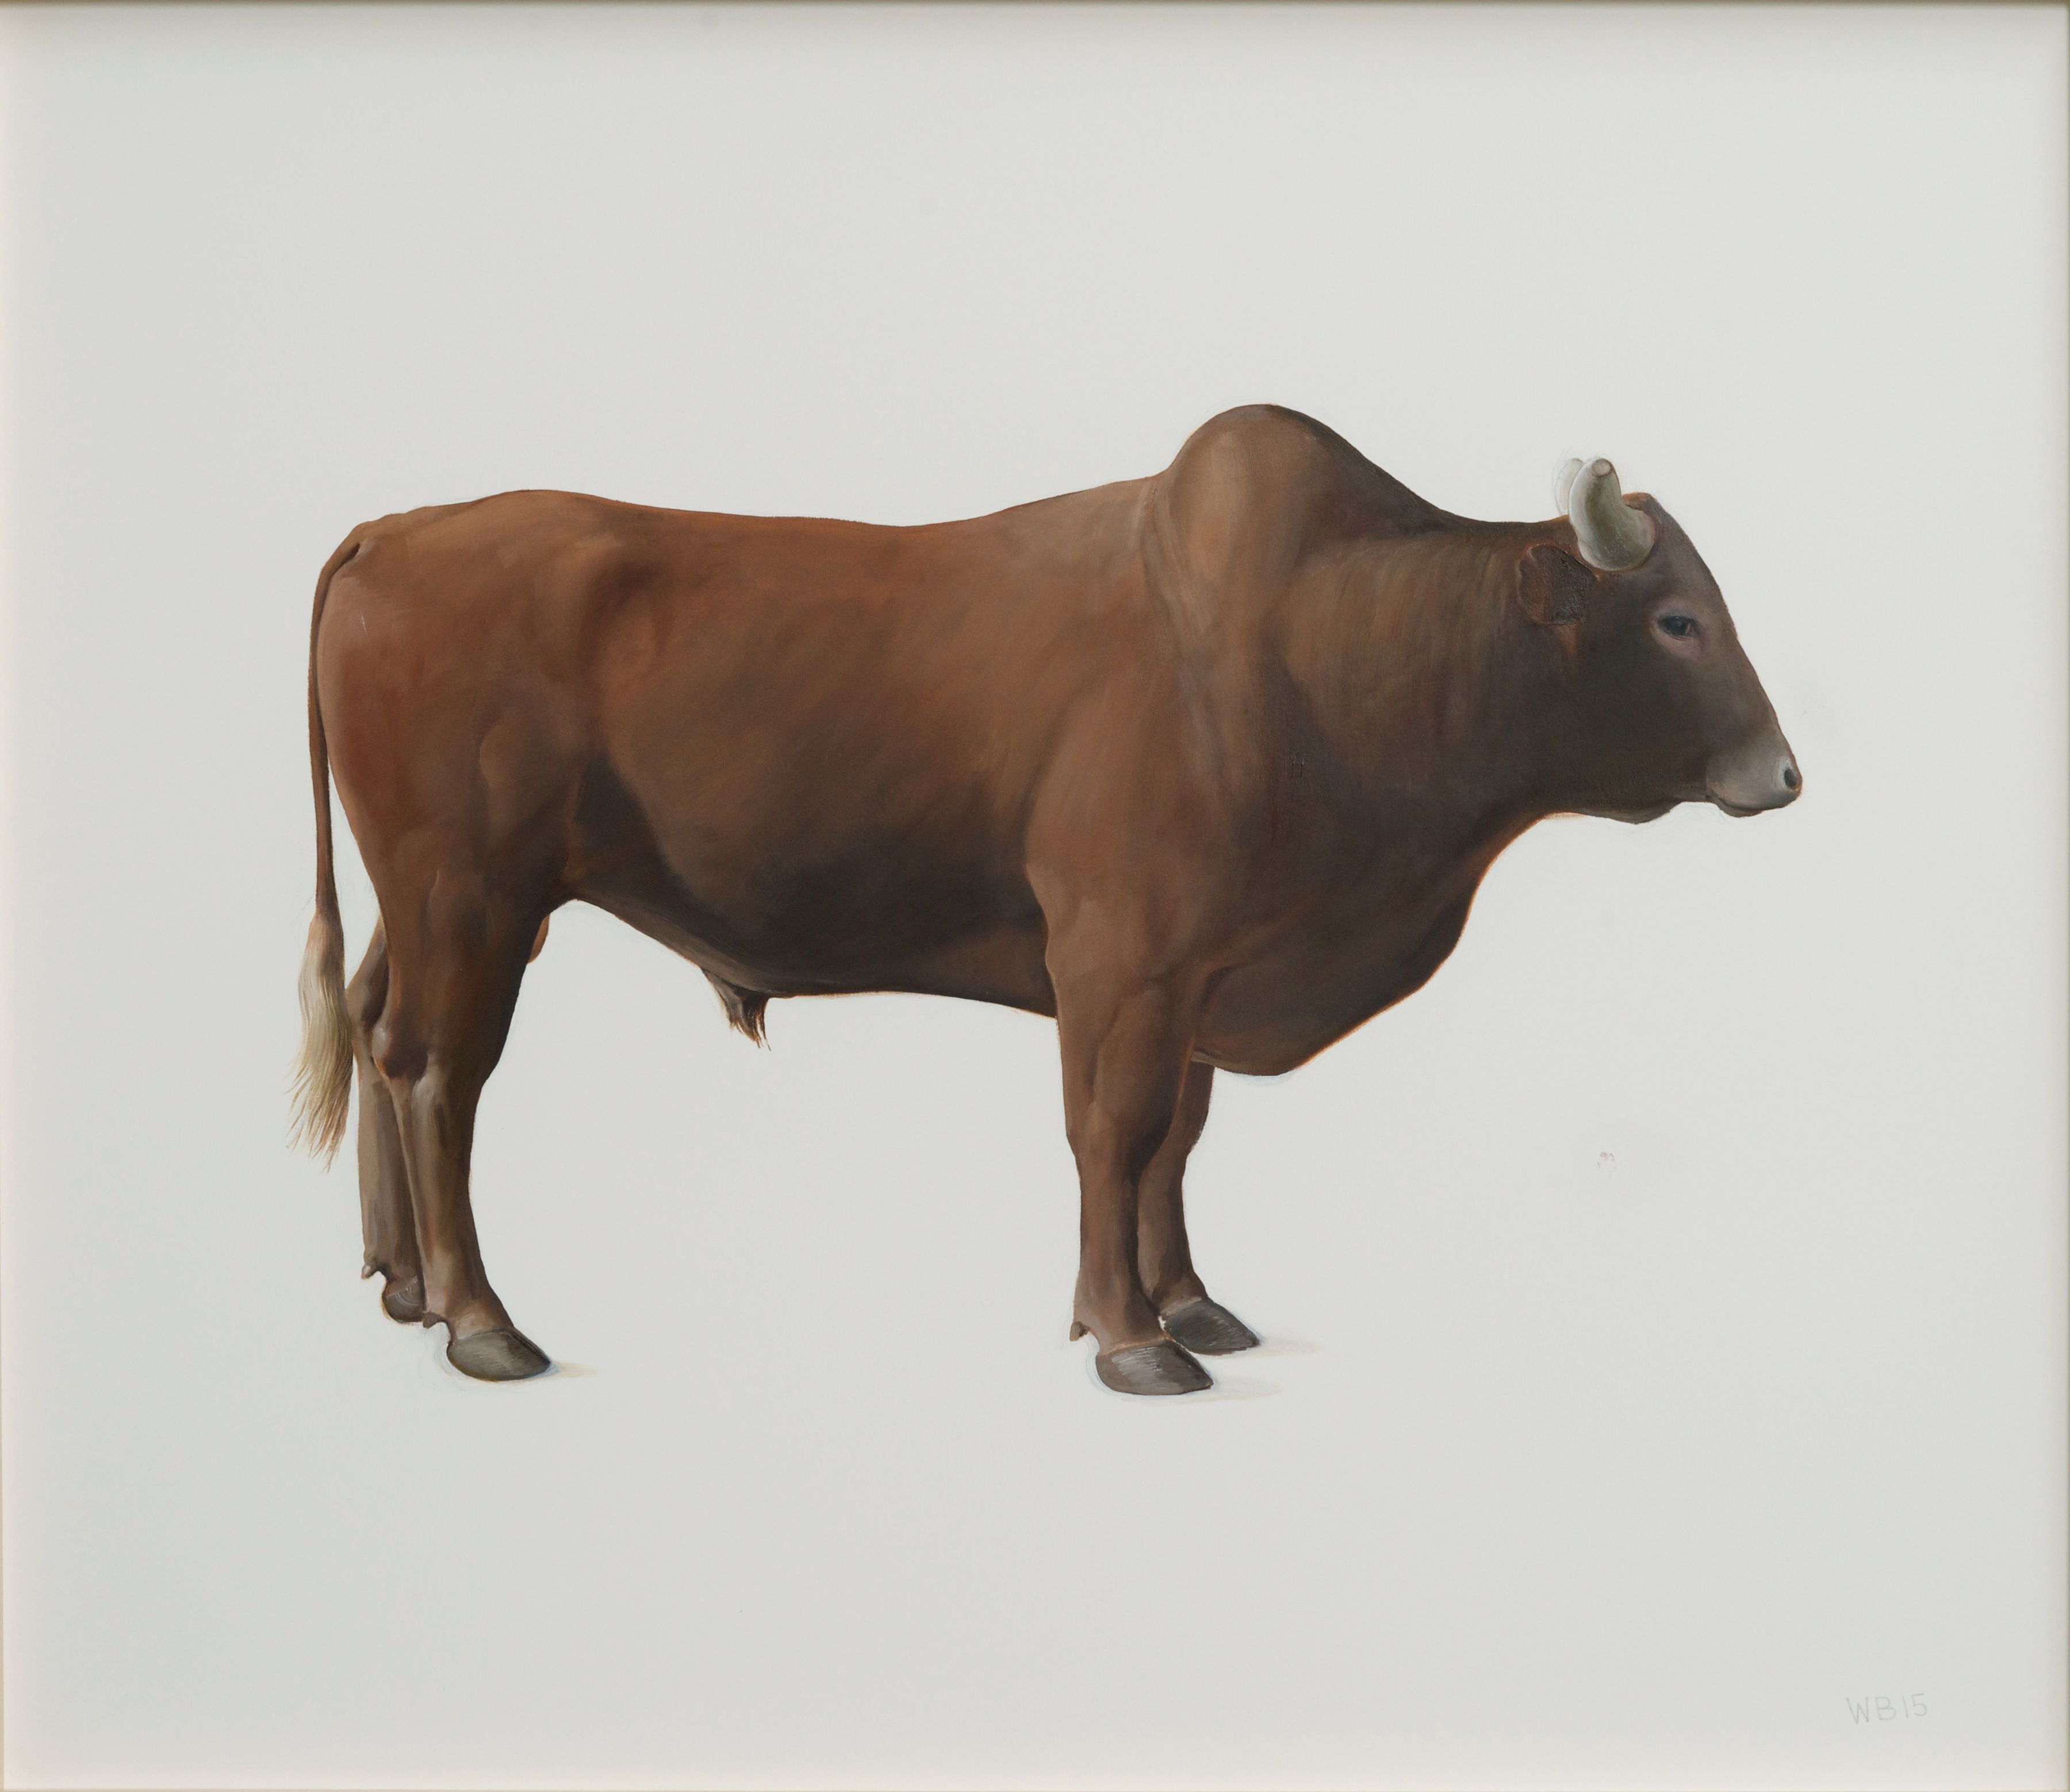 William Beckman, Brown Bull, 2015, oil on paper, 25 3/8 x 29 3/8 inches